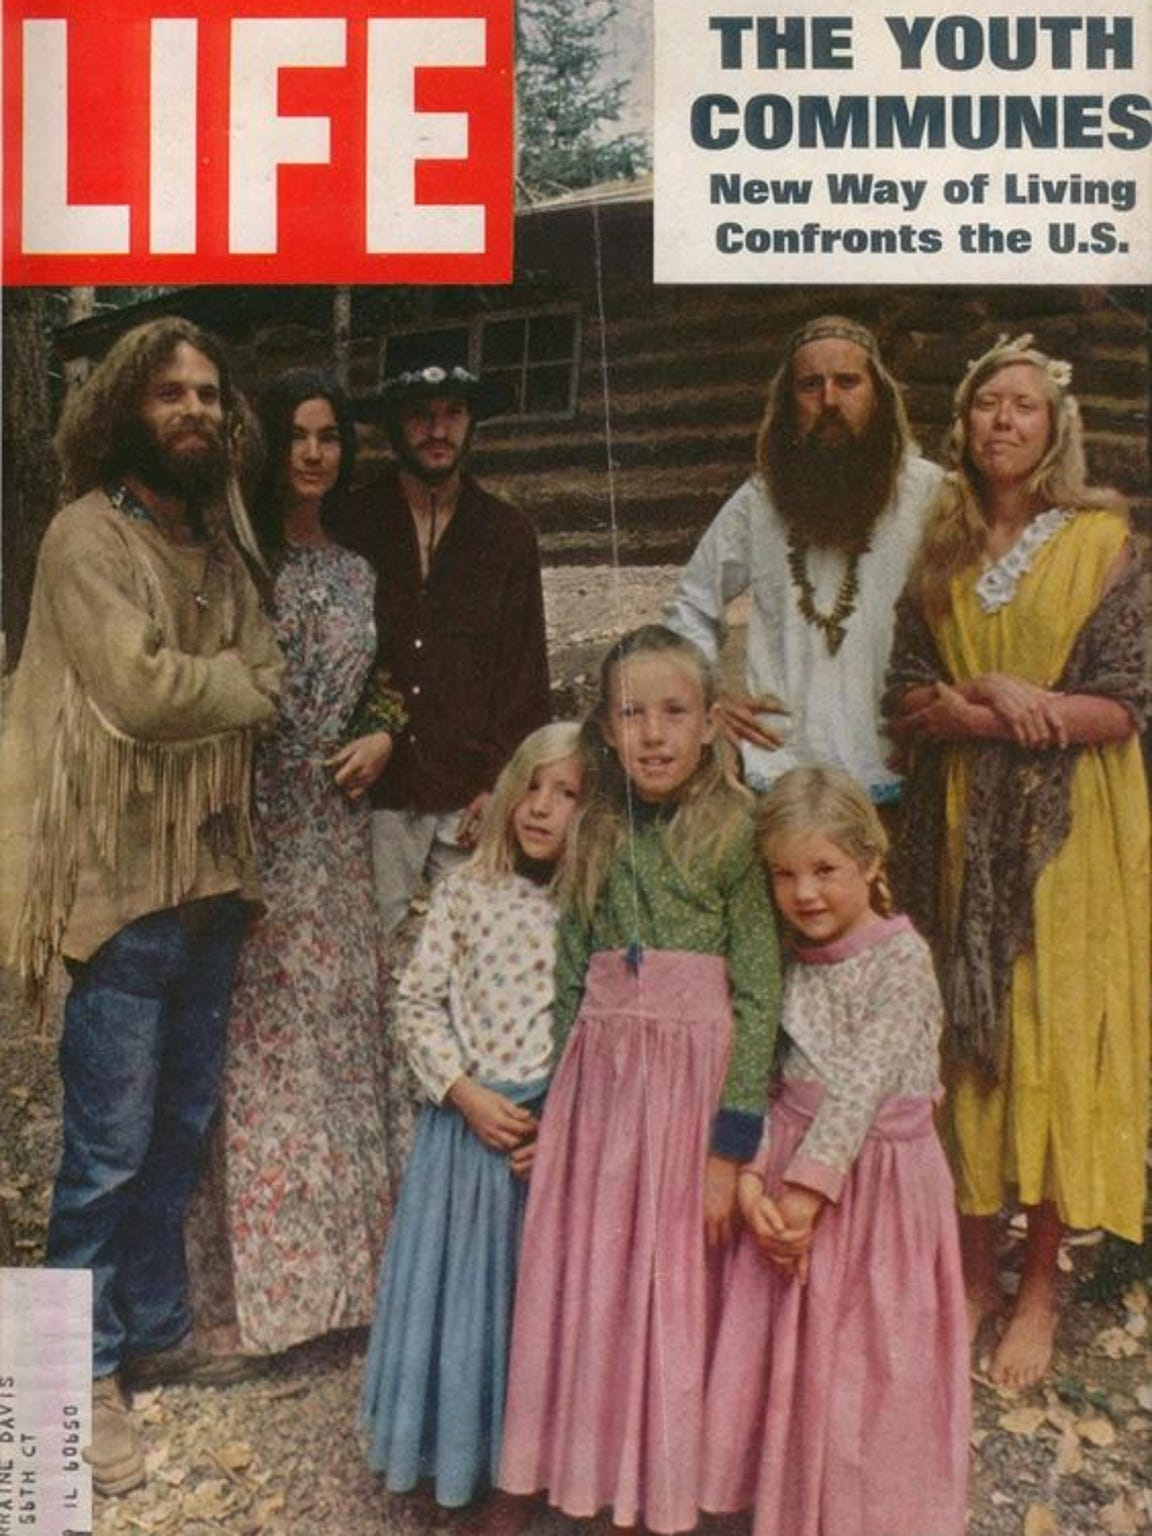 Communes were featured in the July 18, 1969, issue